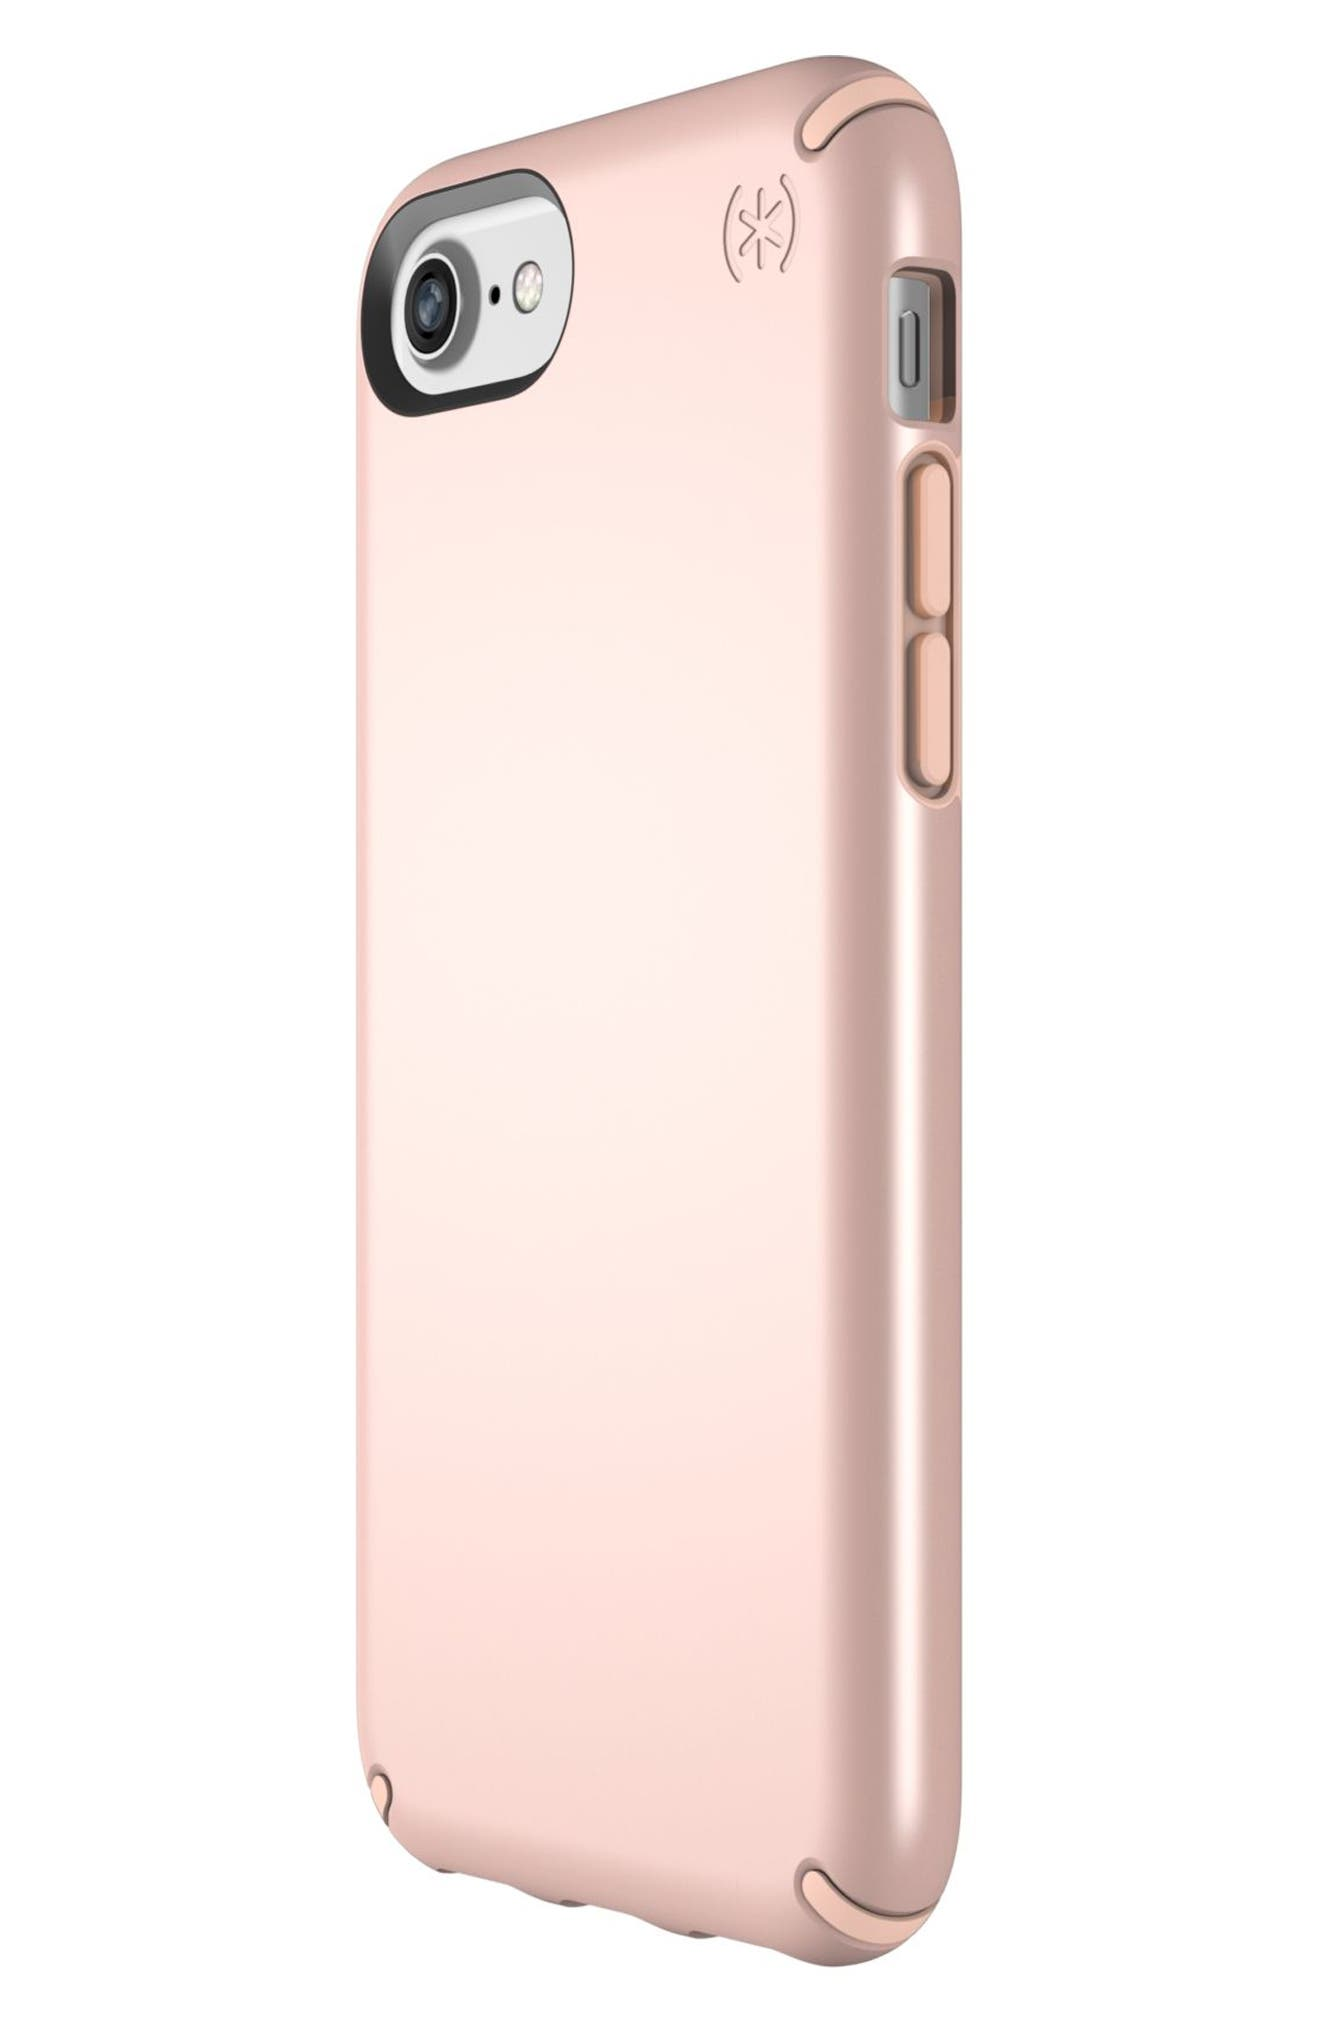 iPhone 6/6s/7/8 Case,                             Alternate thumbnail 3, color,                             Rose Gold Metallic/ Peach